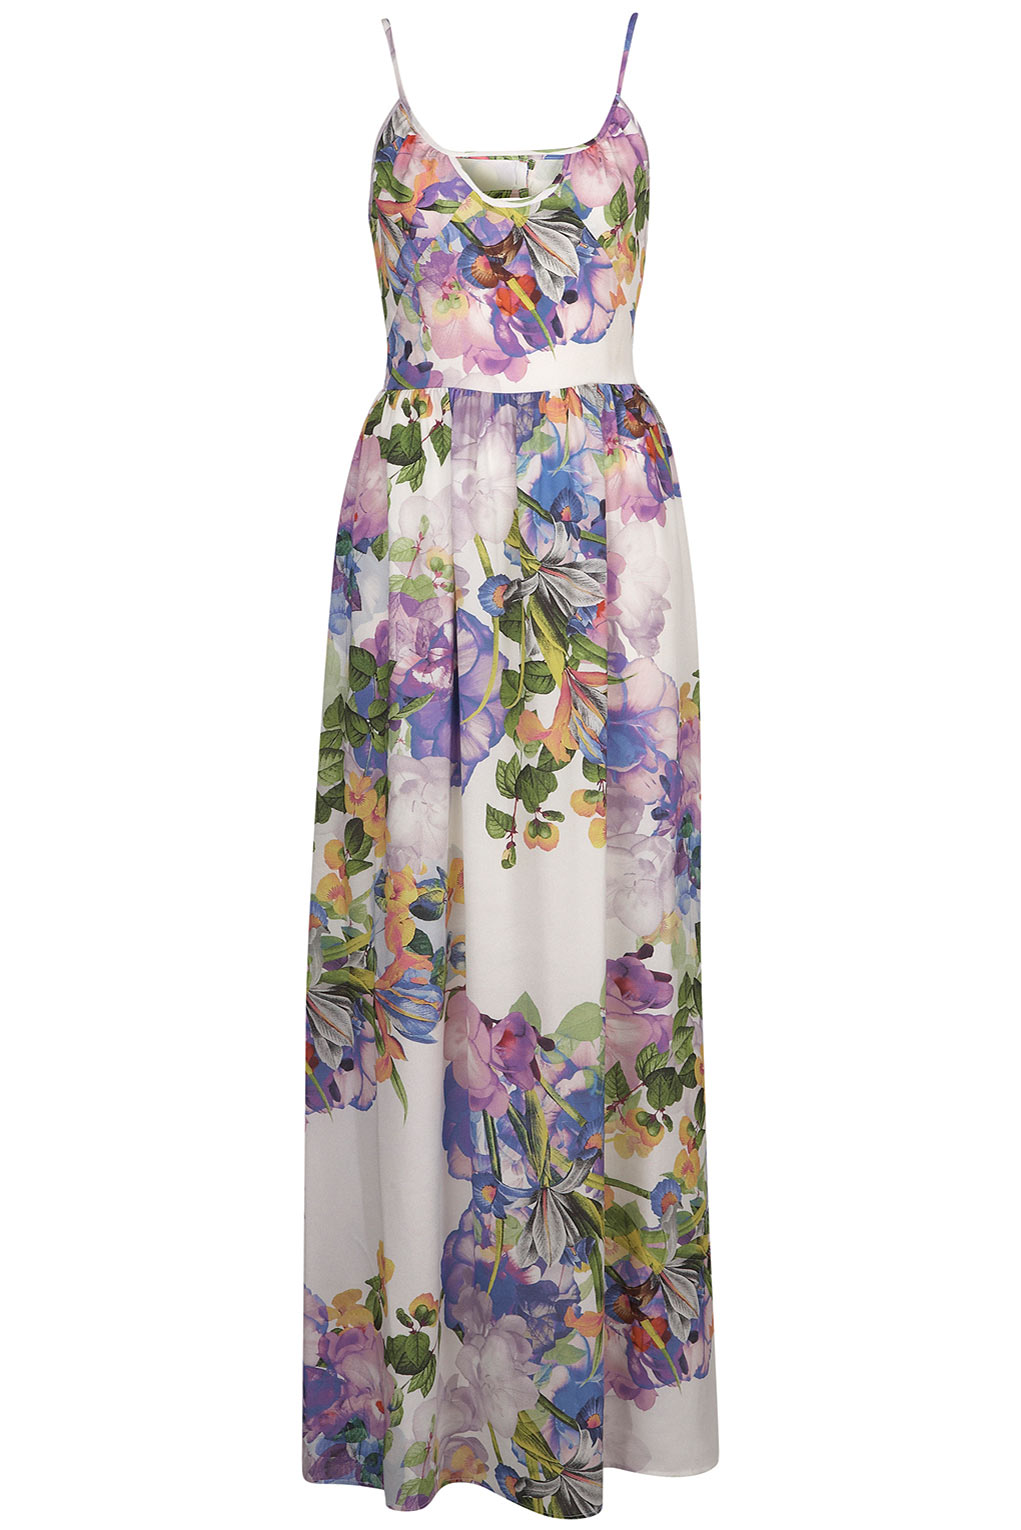 Topshop Floral Print Cutout Maxi Dress In White Lyst